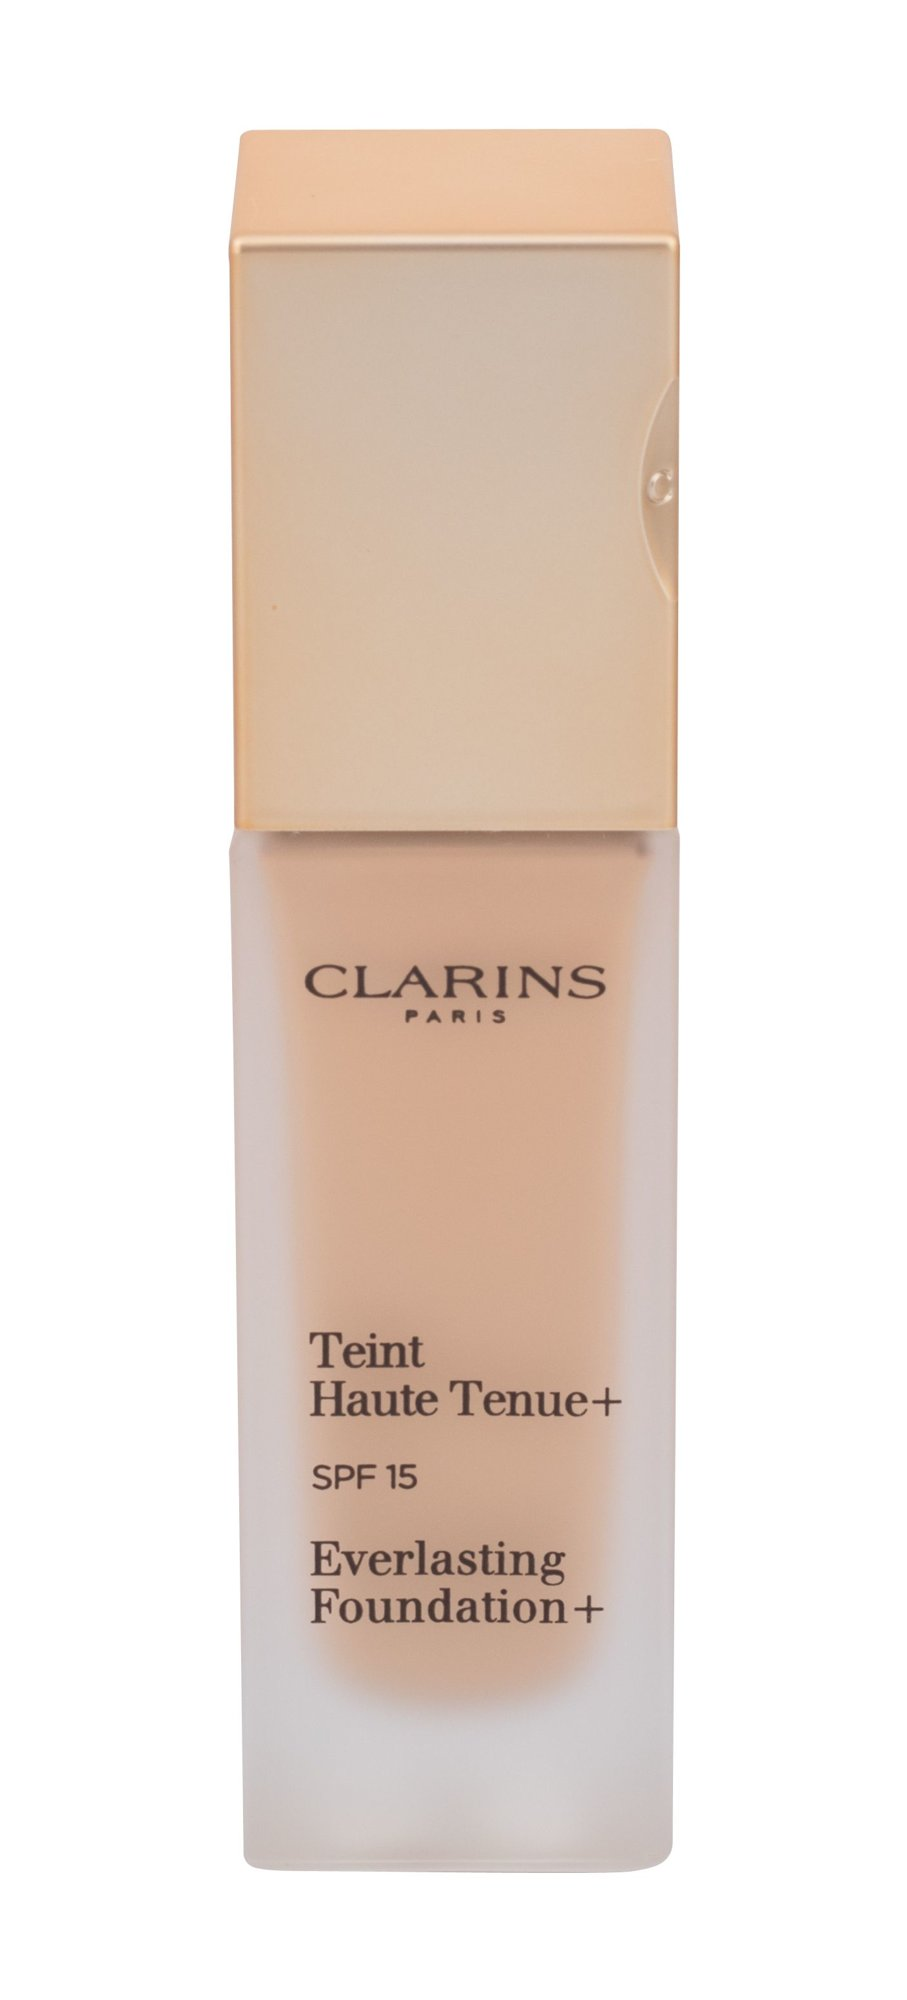 Clarins Everlasting Foundation+ Makeup 30ml 108 Sand